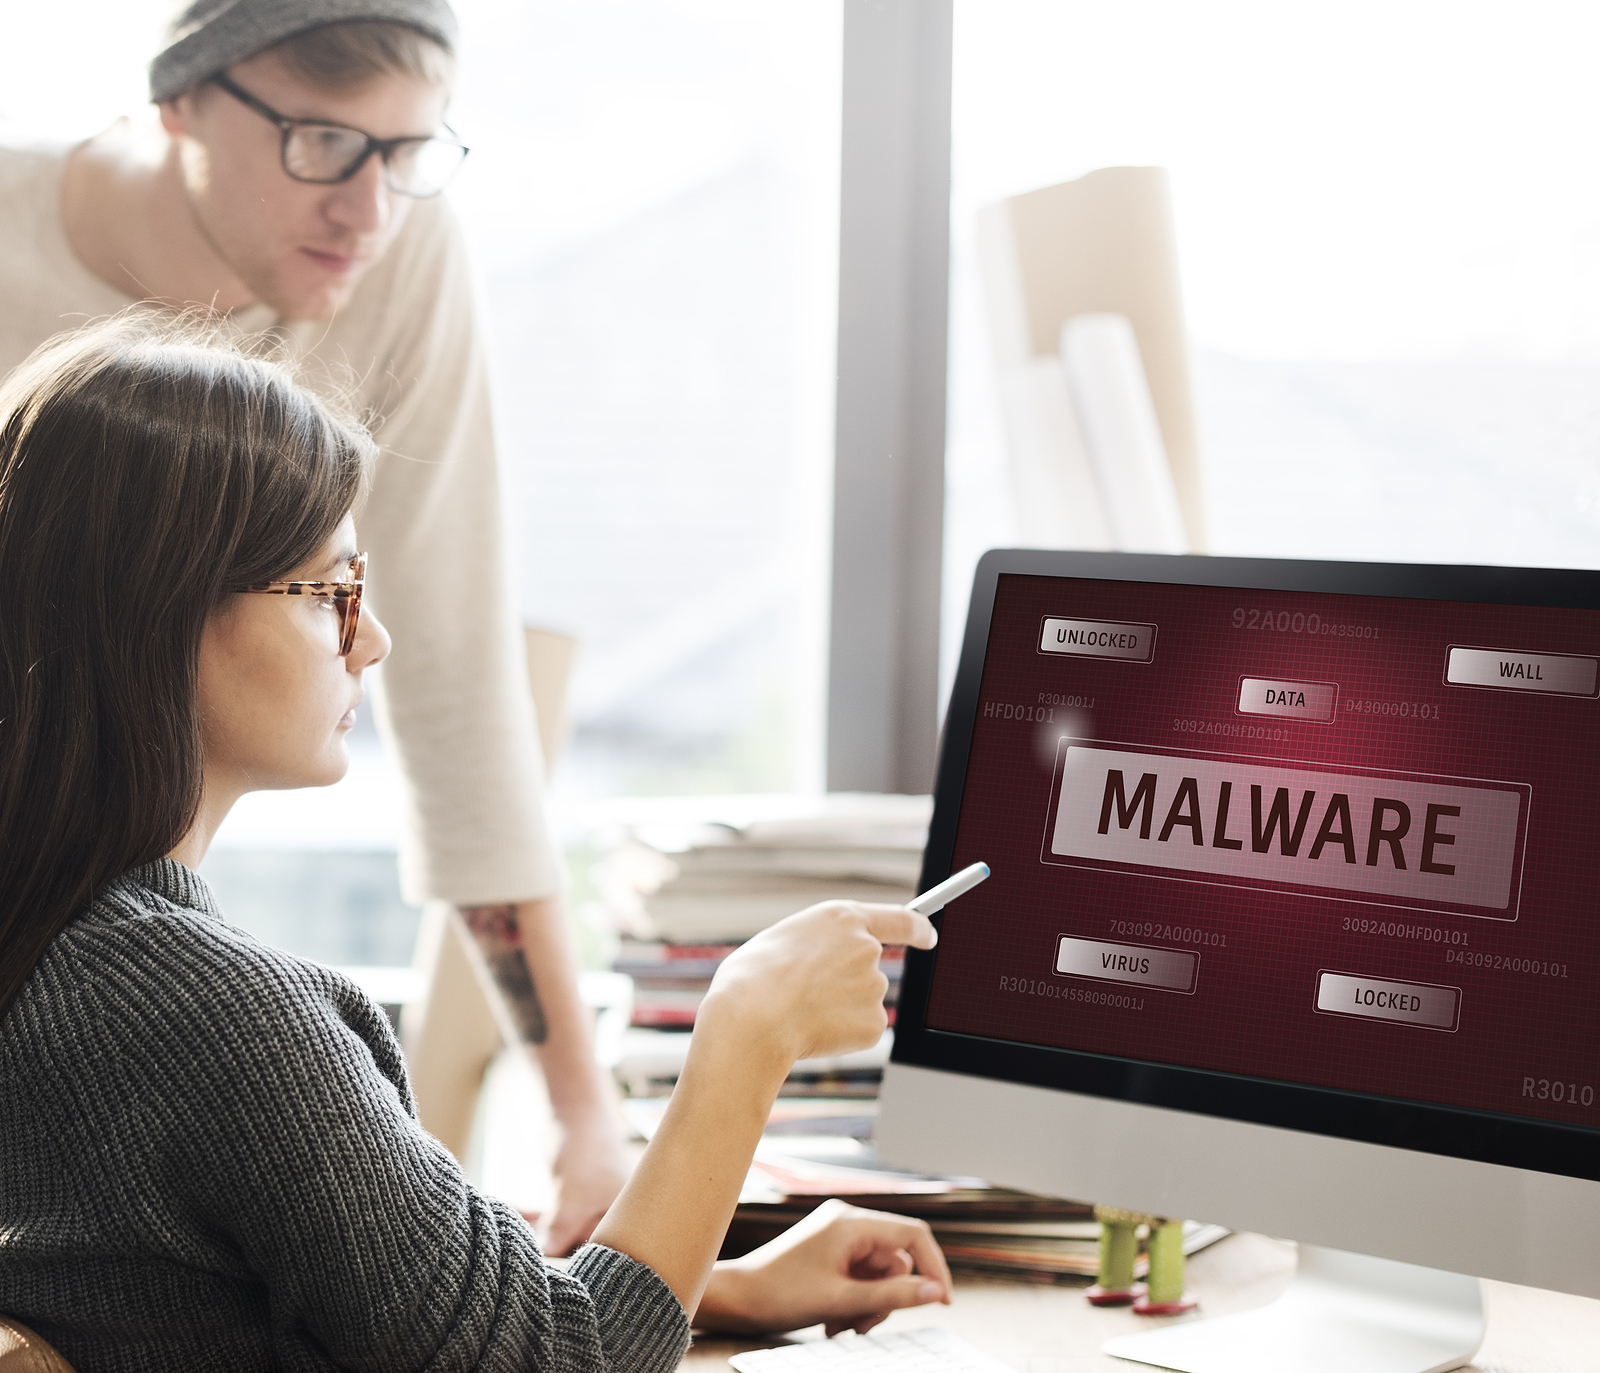 8 Tips for Protecting Your Online Business